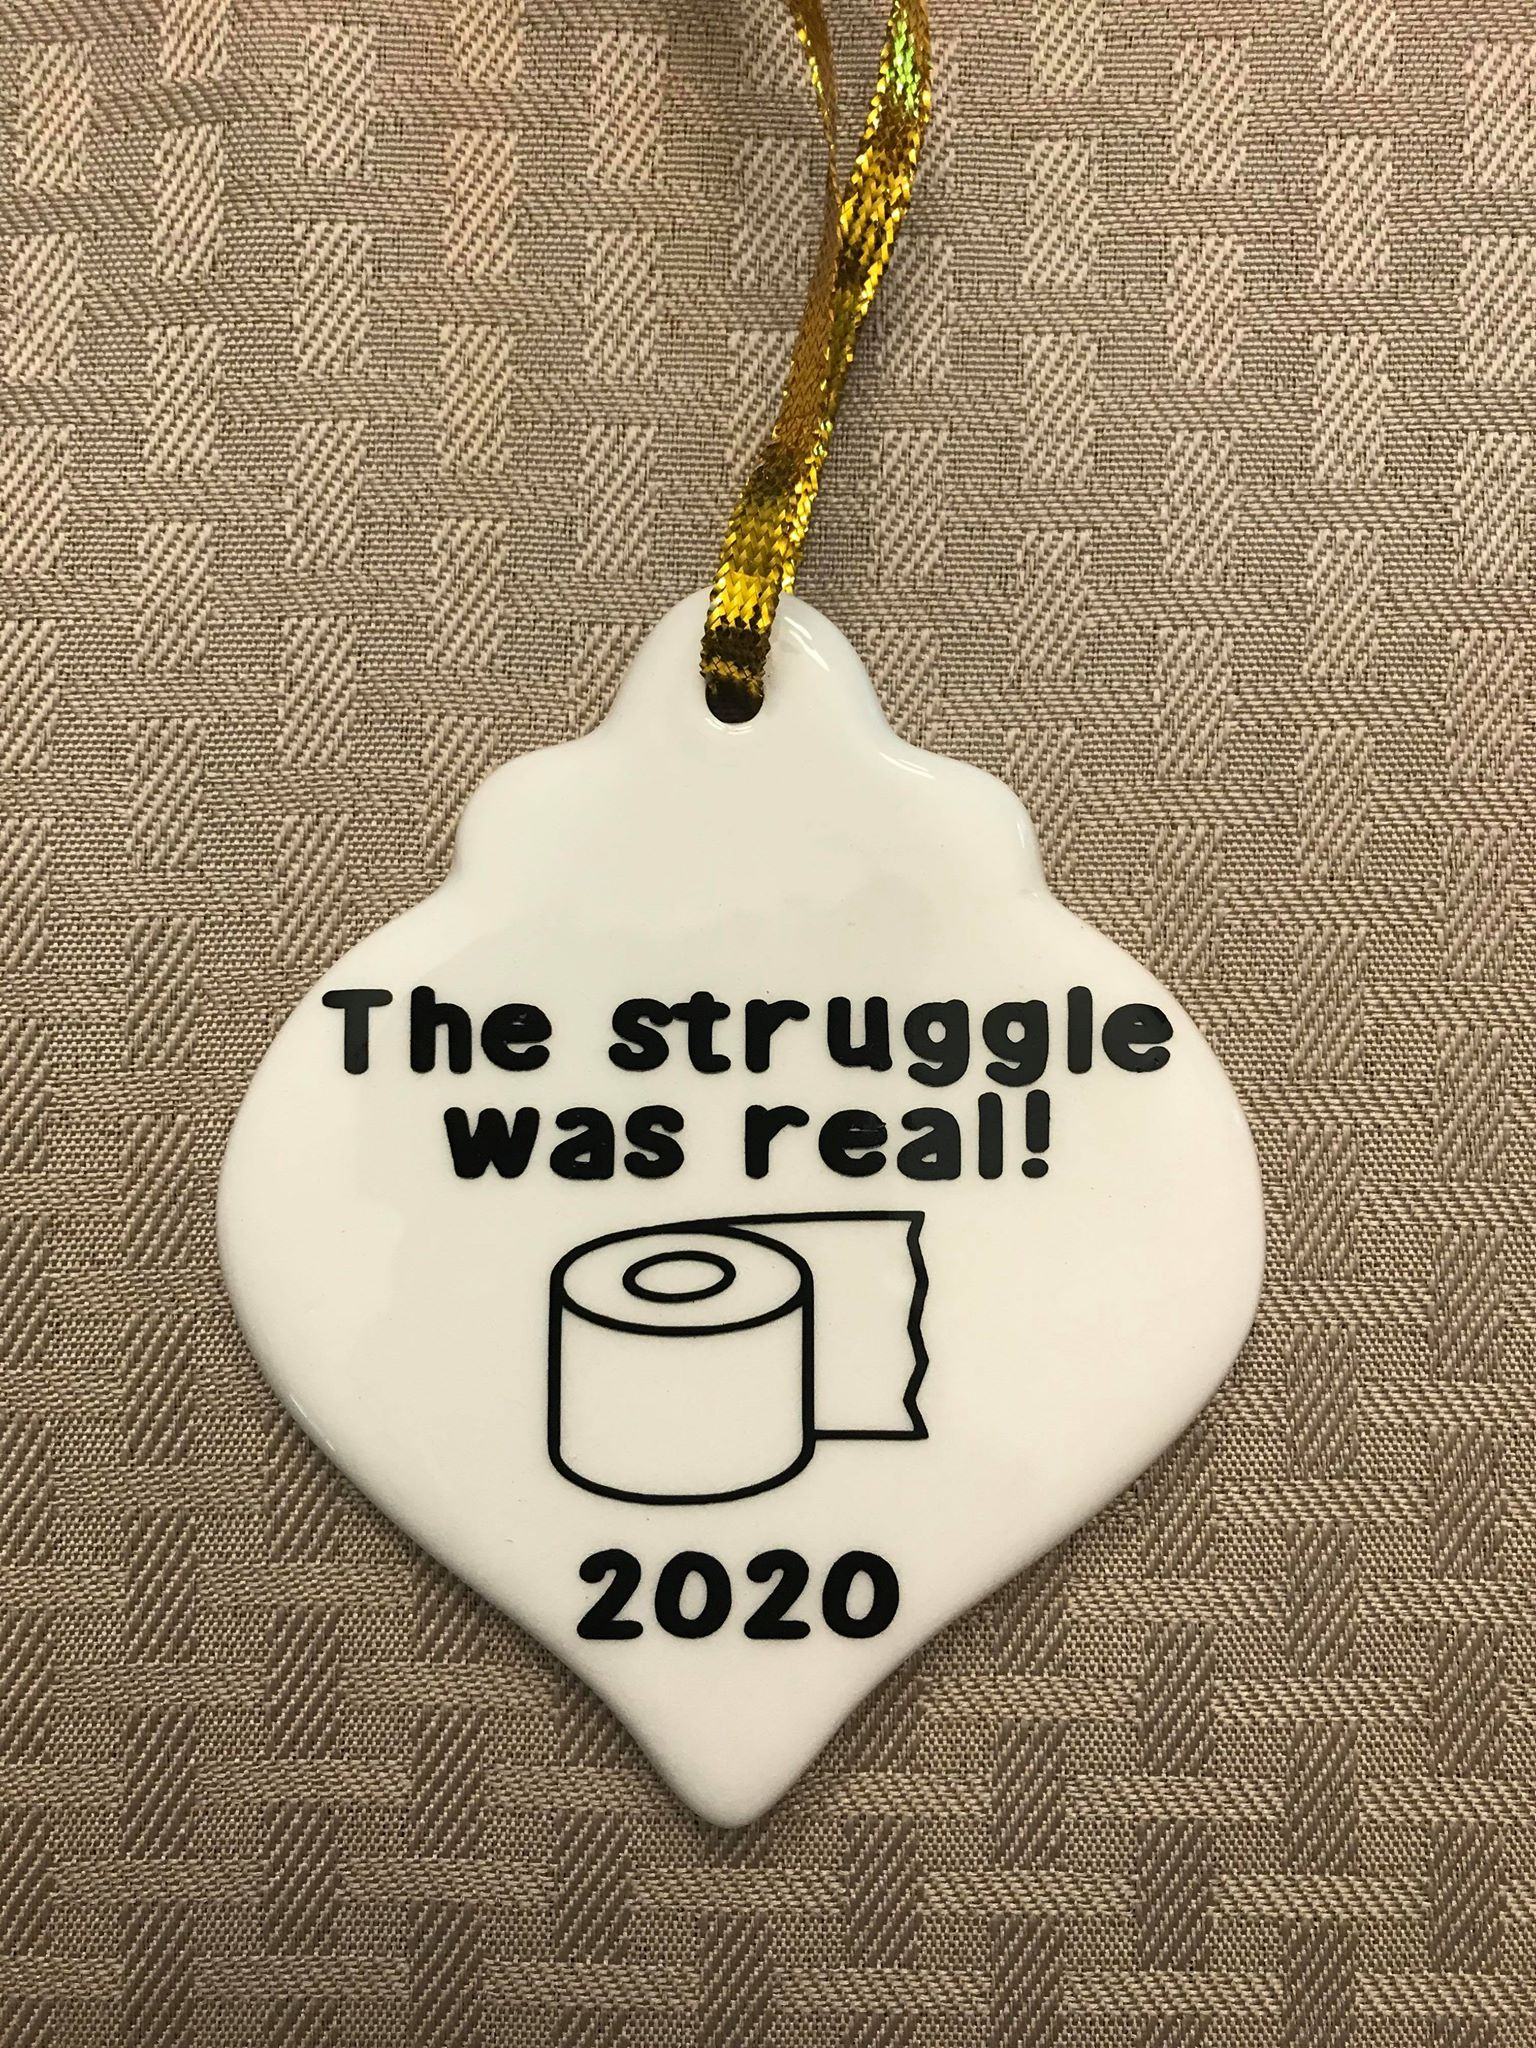 Toilet paper shortage 2020 in 2020 Paper christmas